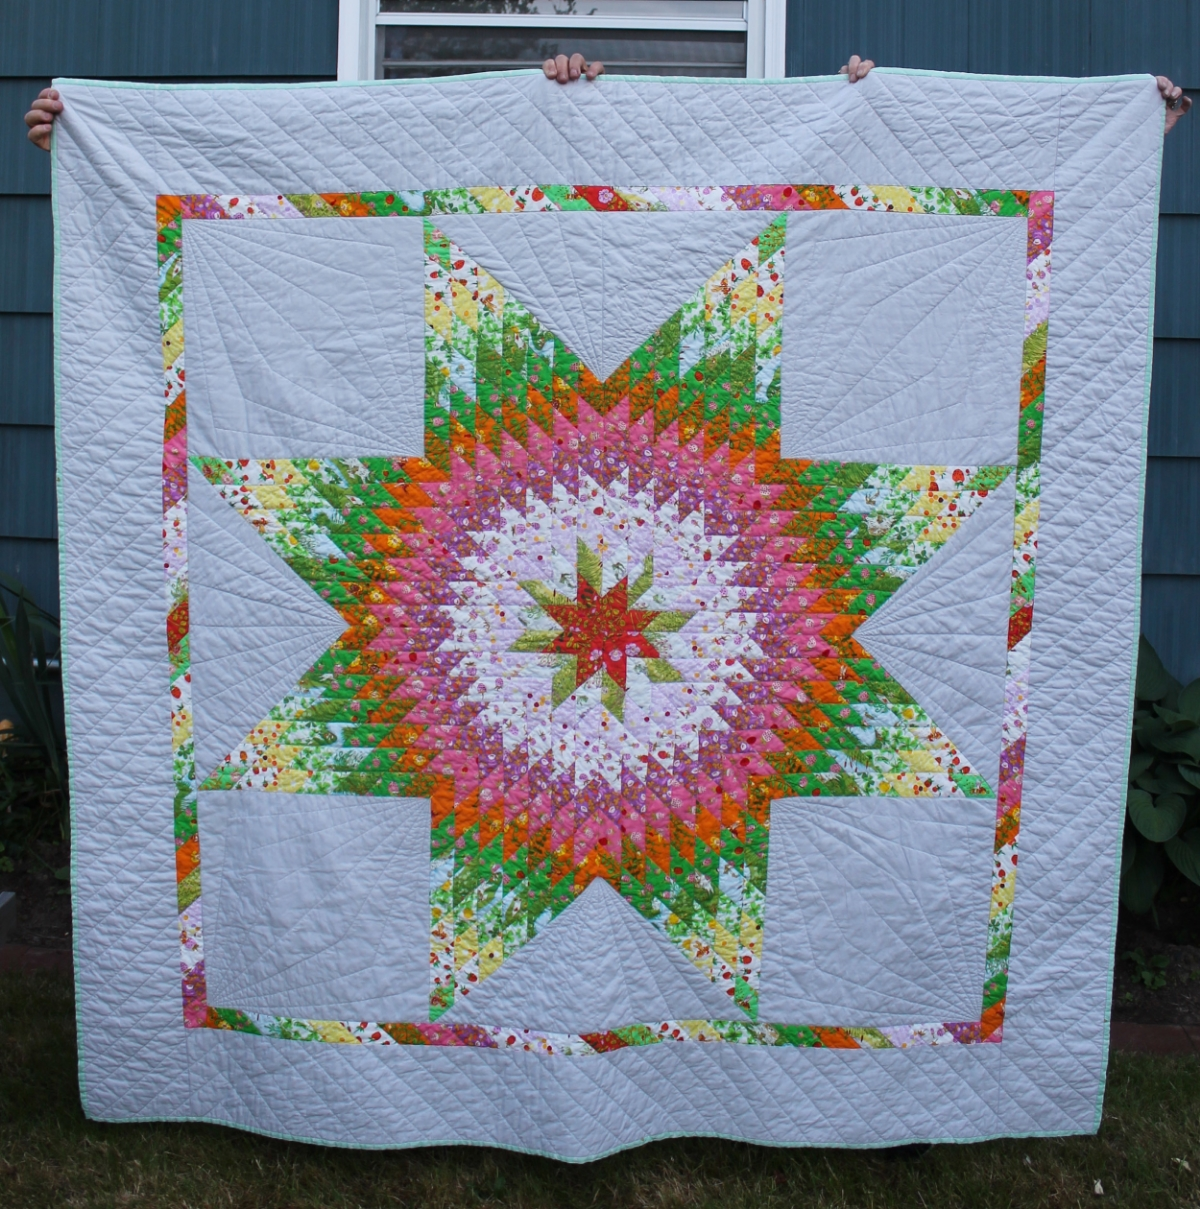 This is a quilt of many names. Lone Star. Morning Star. Radiant Star. Star of Bethlehem. Texas or Texan Star. Other than the fabric, my version is not a particularly modern take on the pattern, but I feel like a good modern name would be Big Star. www.hoorayforrain.com